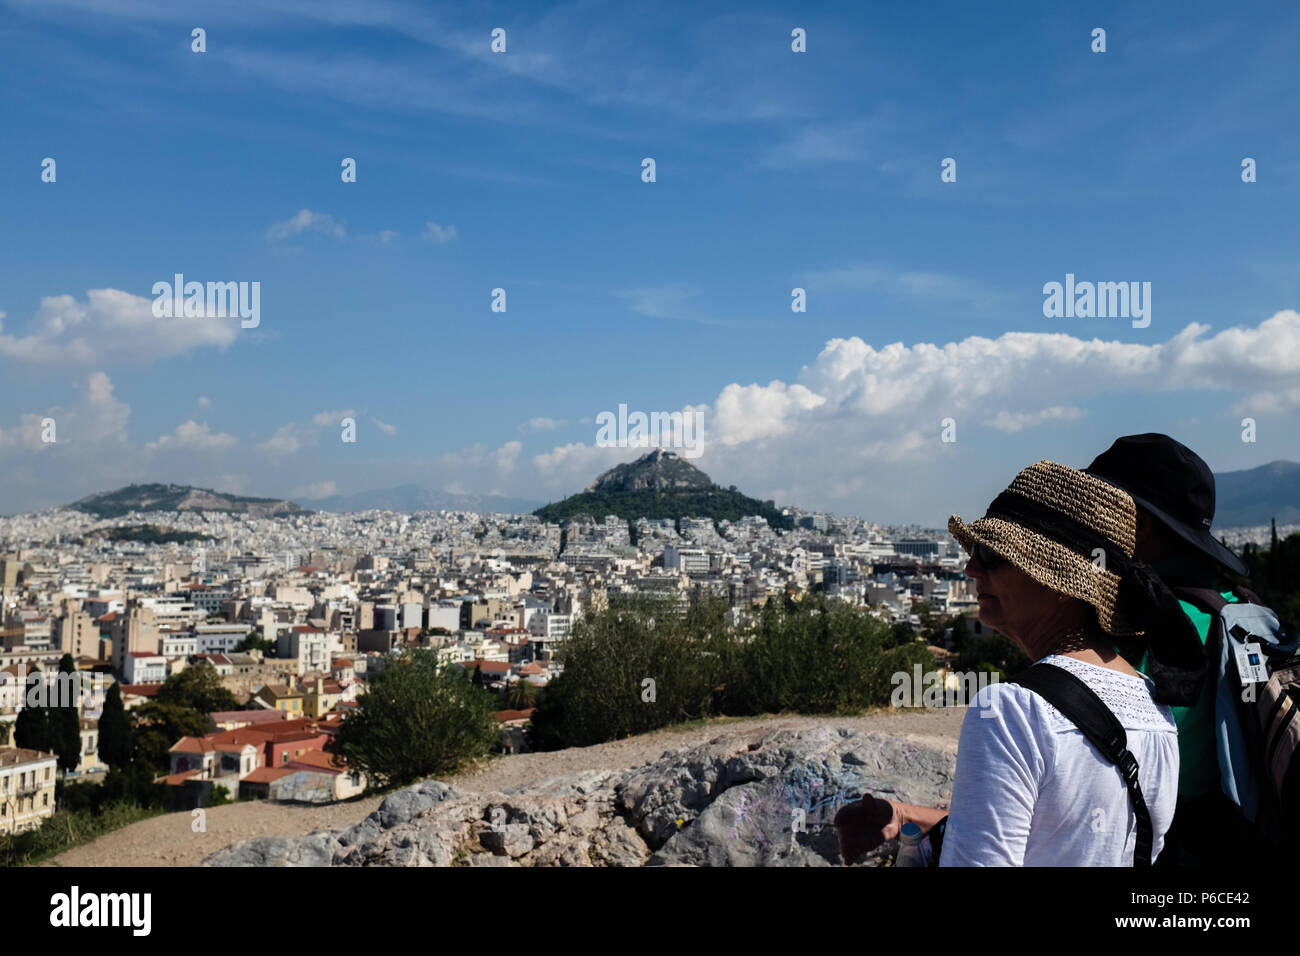 Couple on the Acropolis, enjoying the views of Athens and Mount Lycabettus ( Lycabettos ), and the blue skies, Athens, Greece. Stock Photo